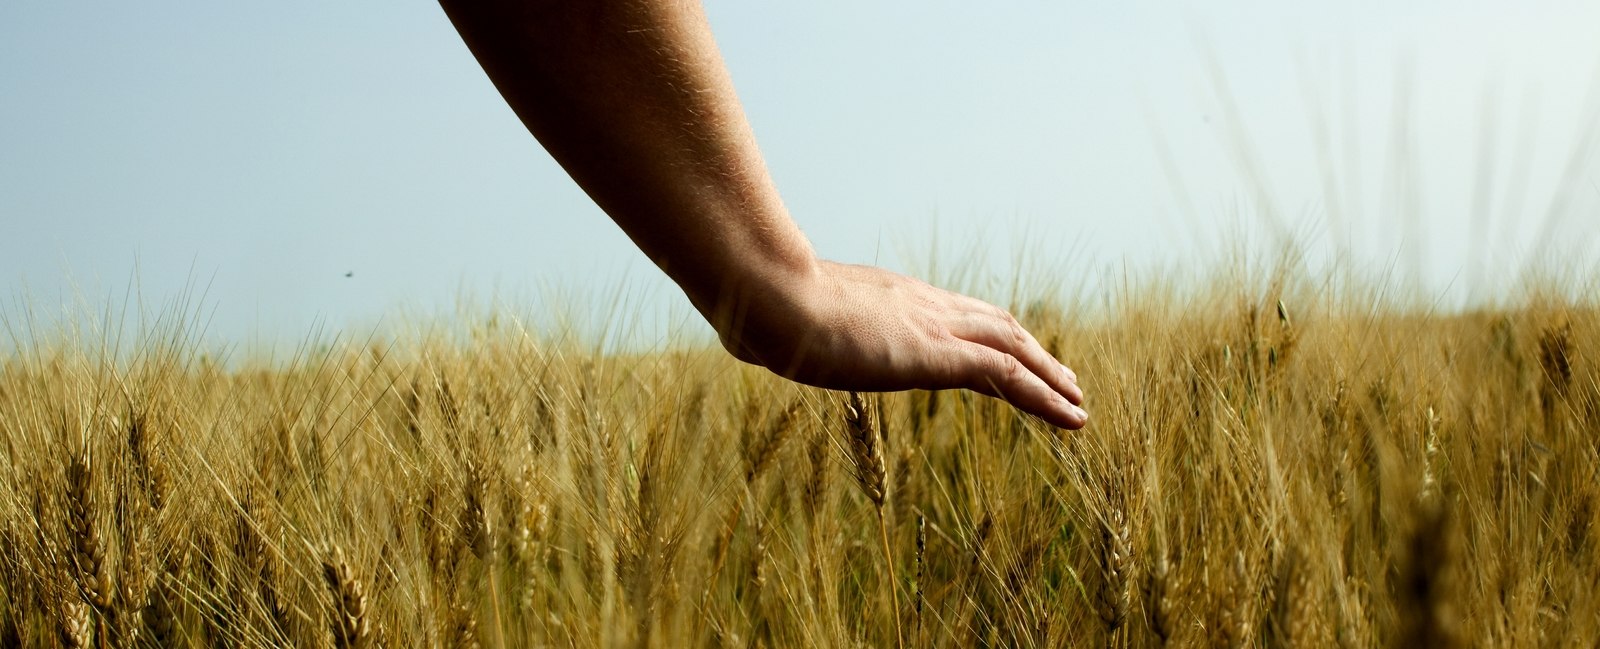 hands in the field